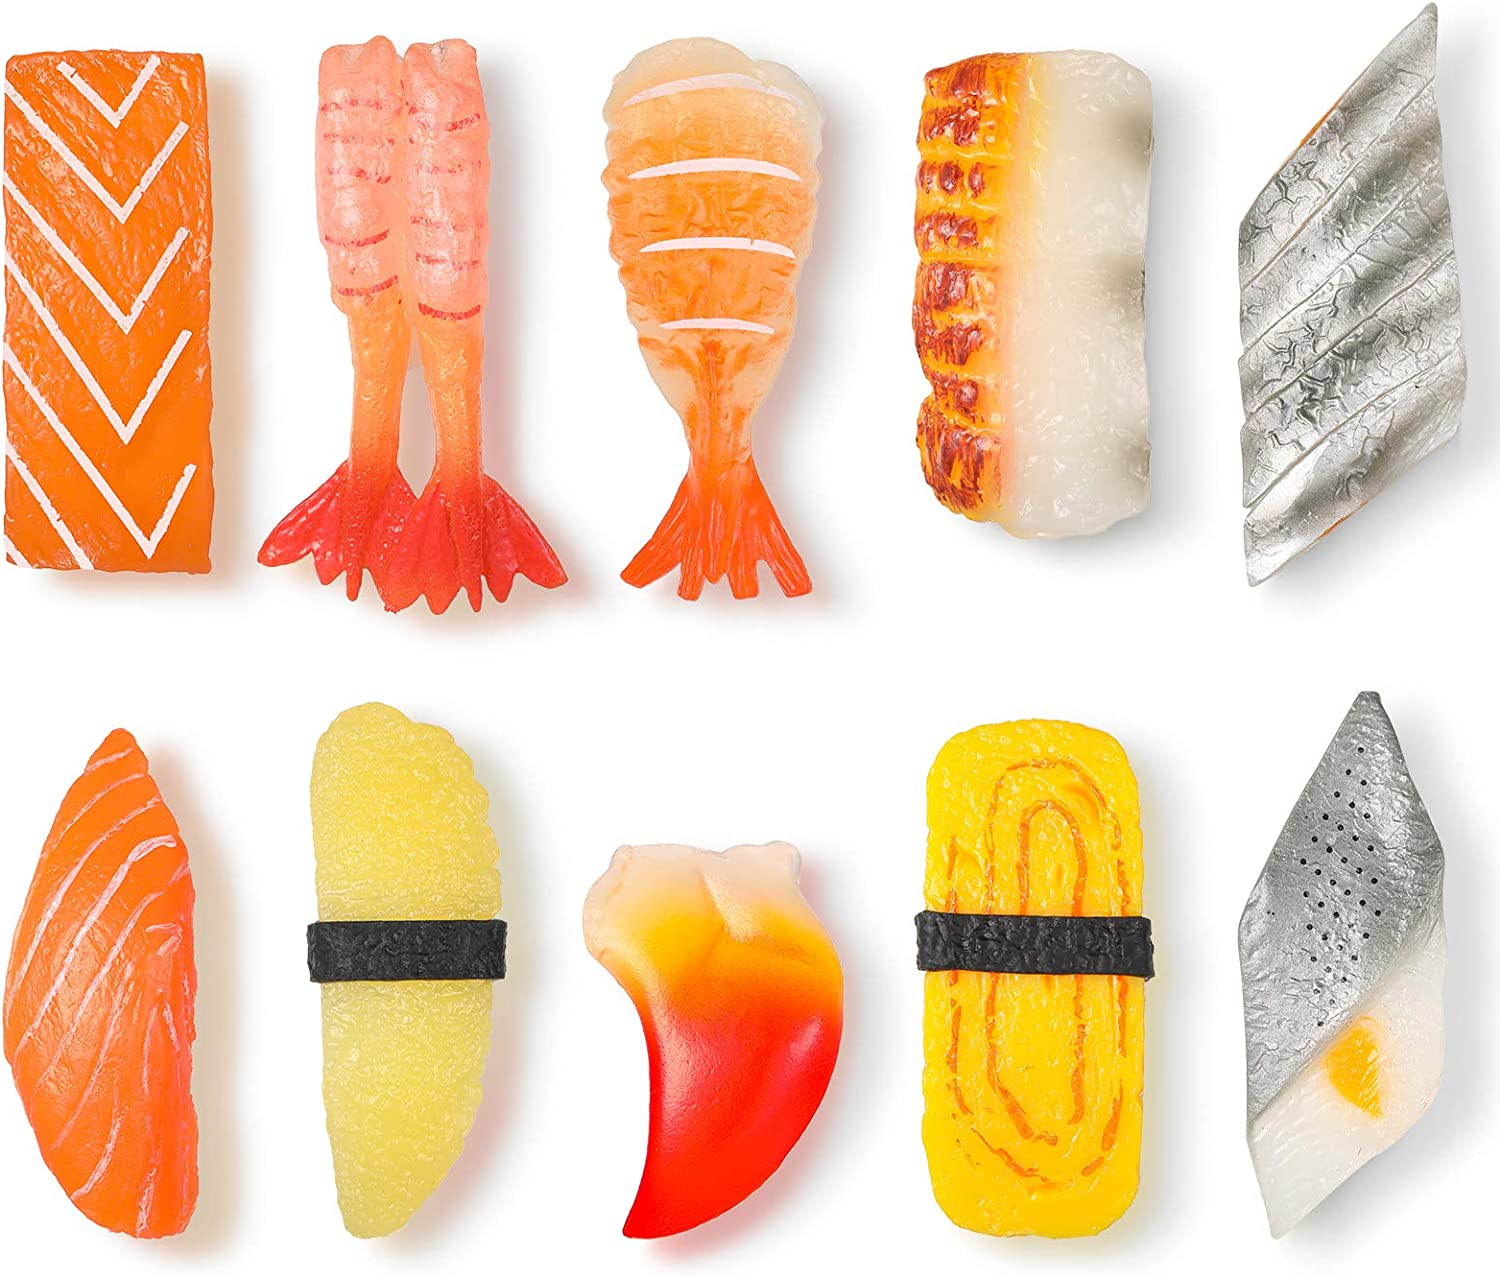 10 Pieces Simulated Sushi Magnets Cute Sushi Whiteboard Magnets Japanese Food Salmon Fridge Magnet for Home and Office Decoration